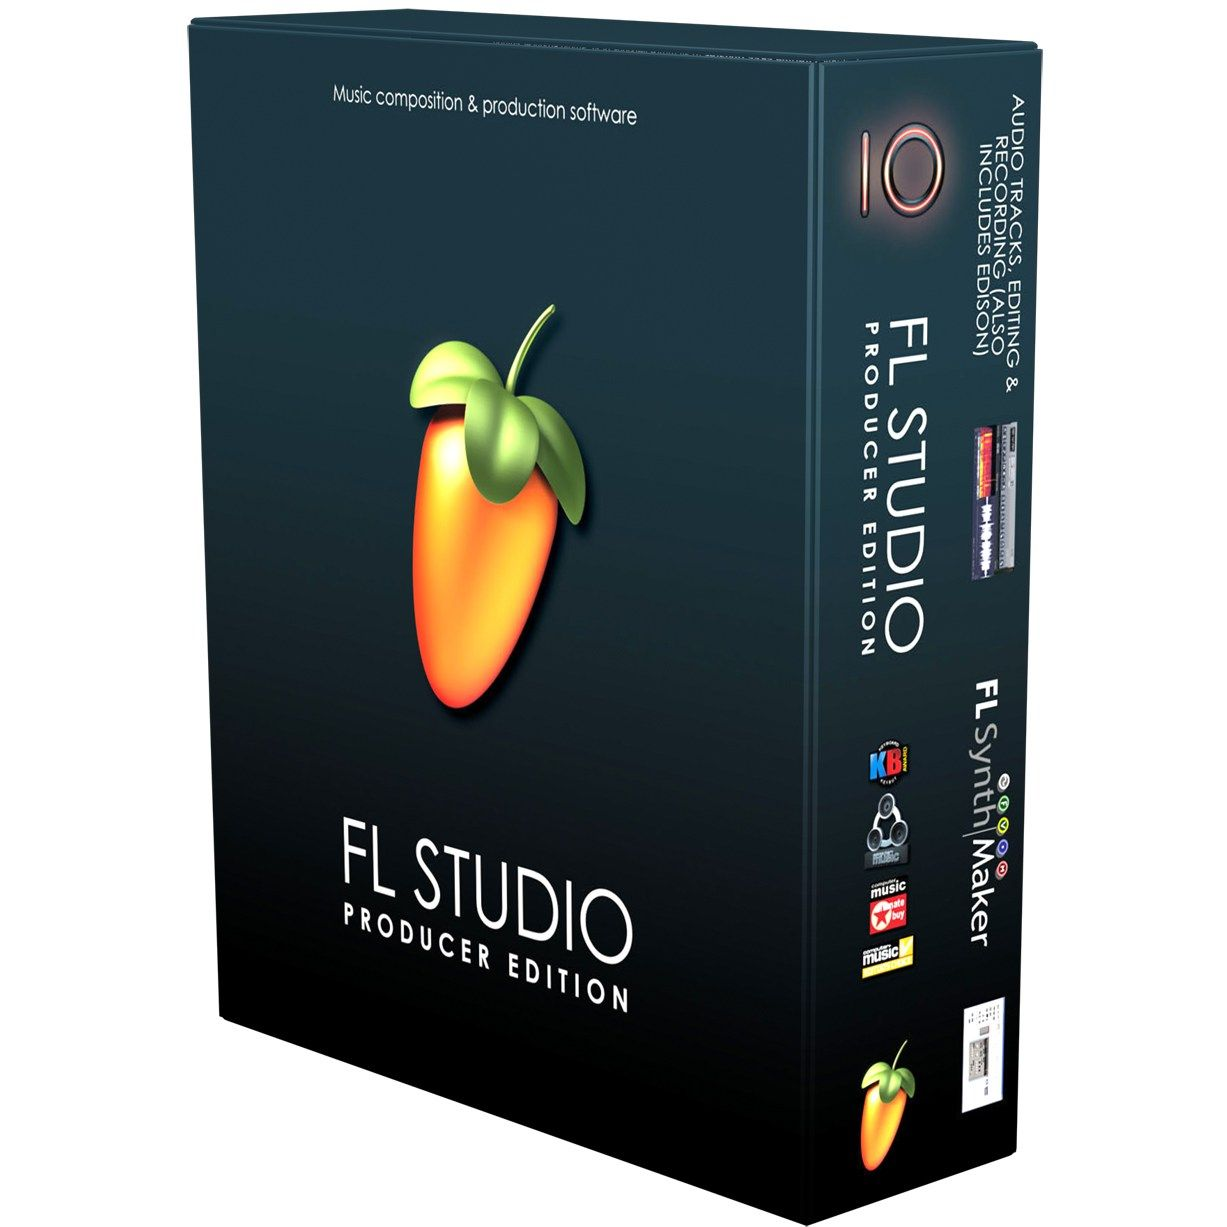 Fl studio 11 producer edition скачать.